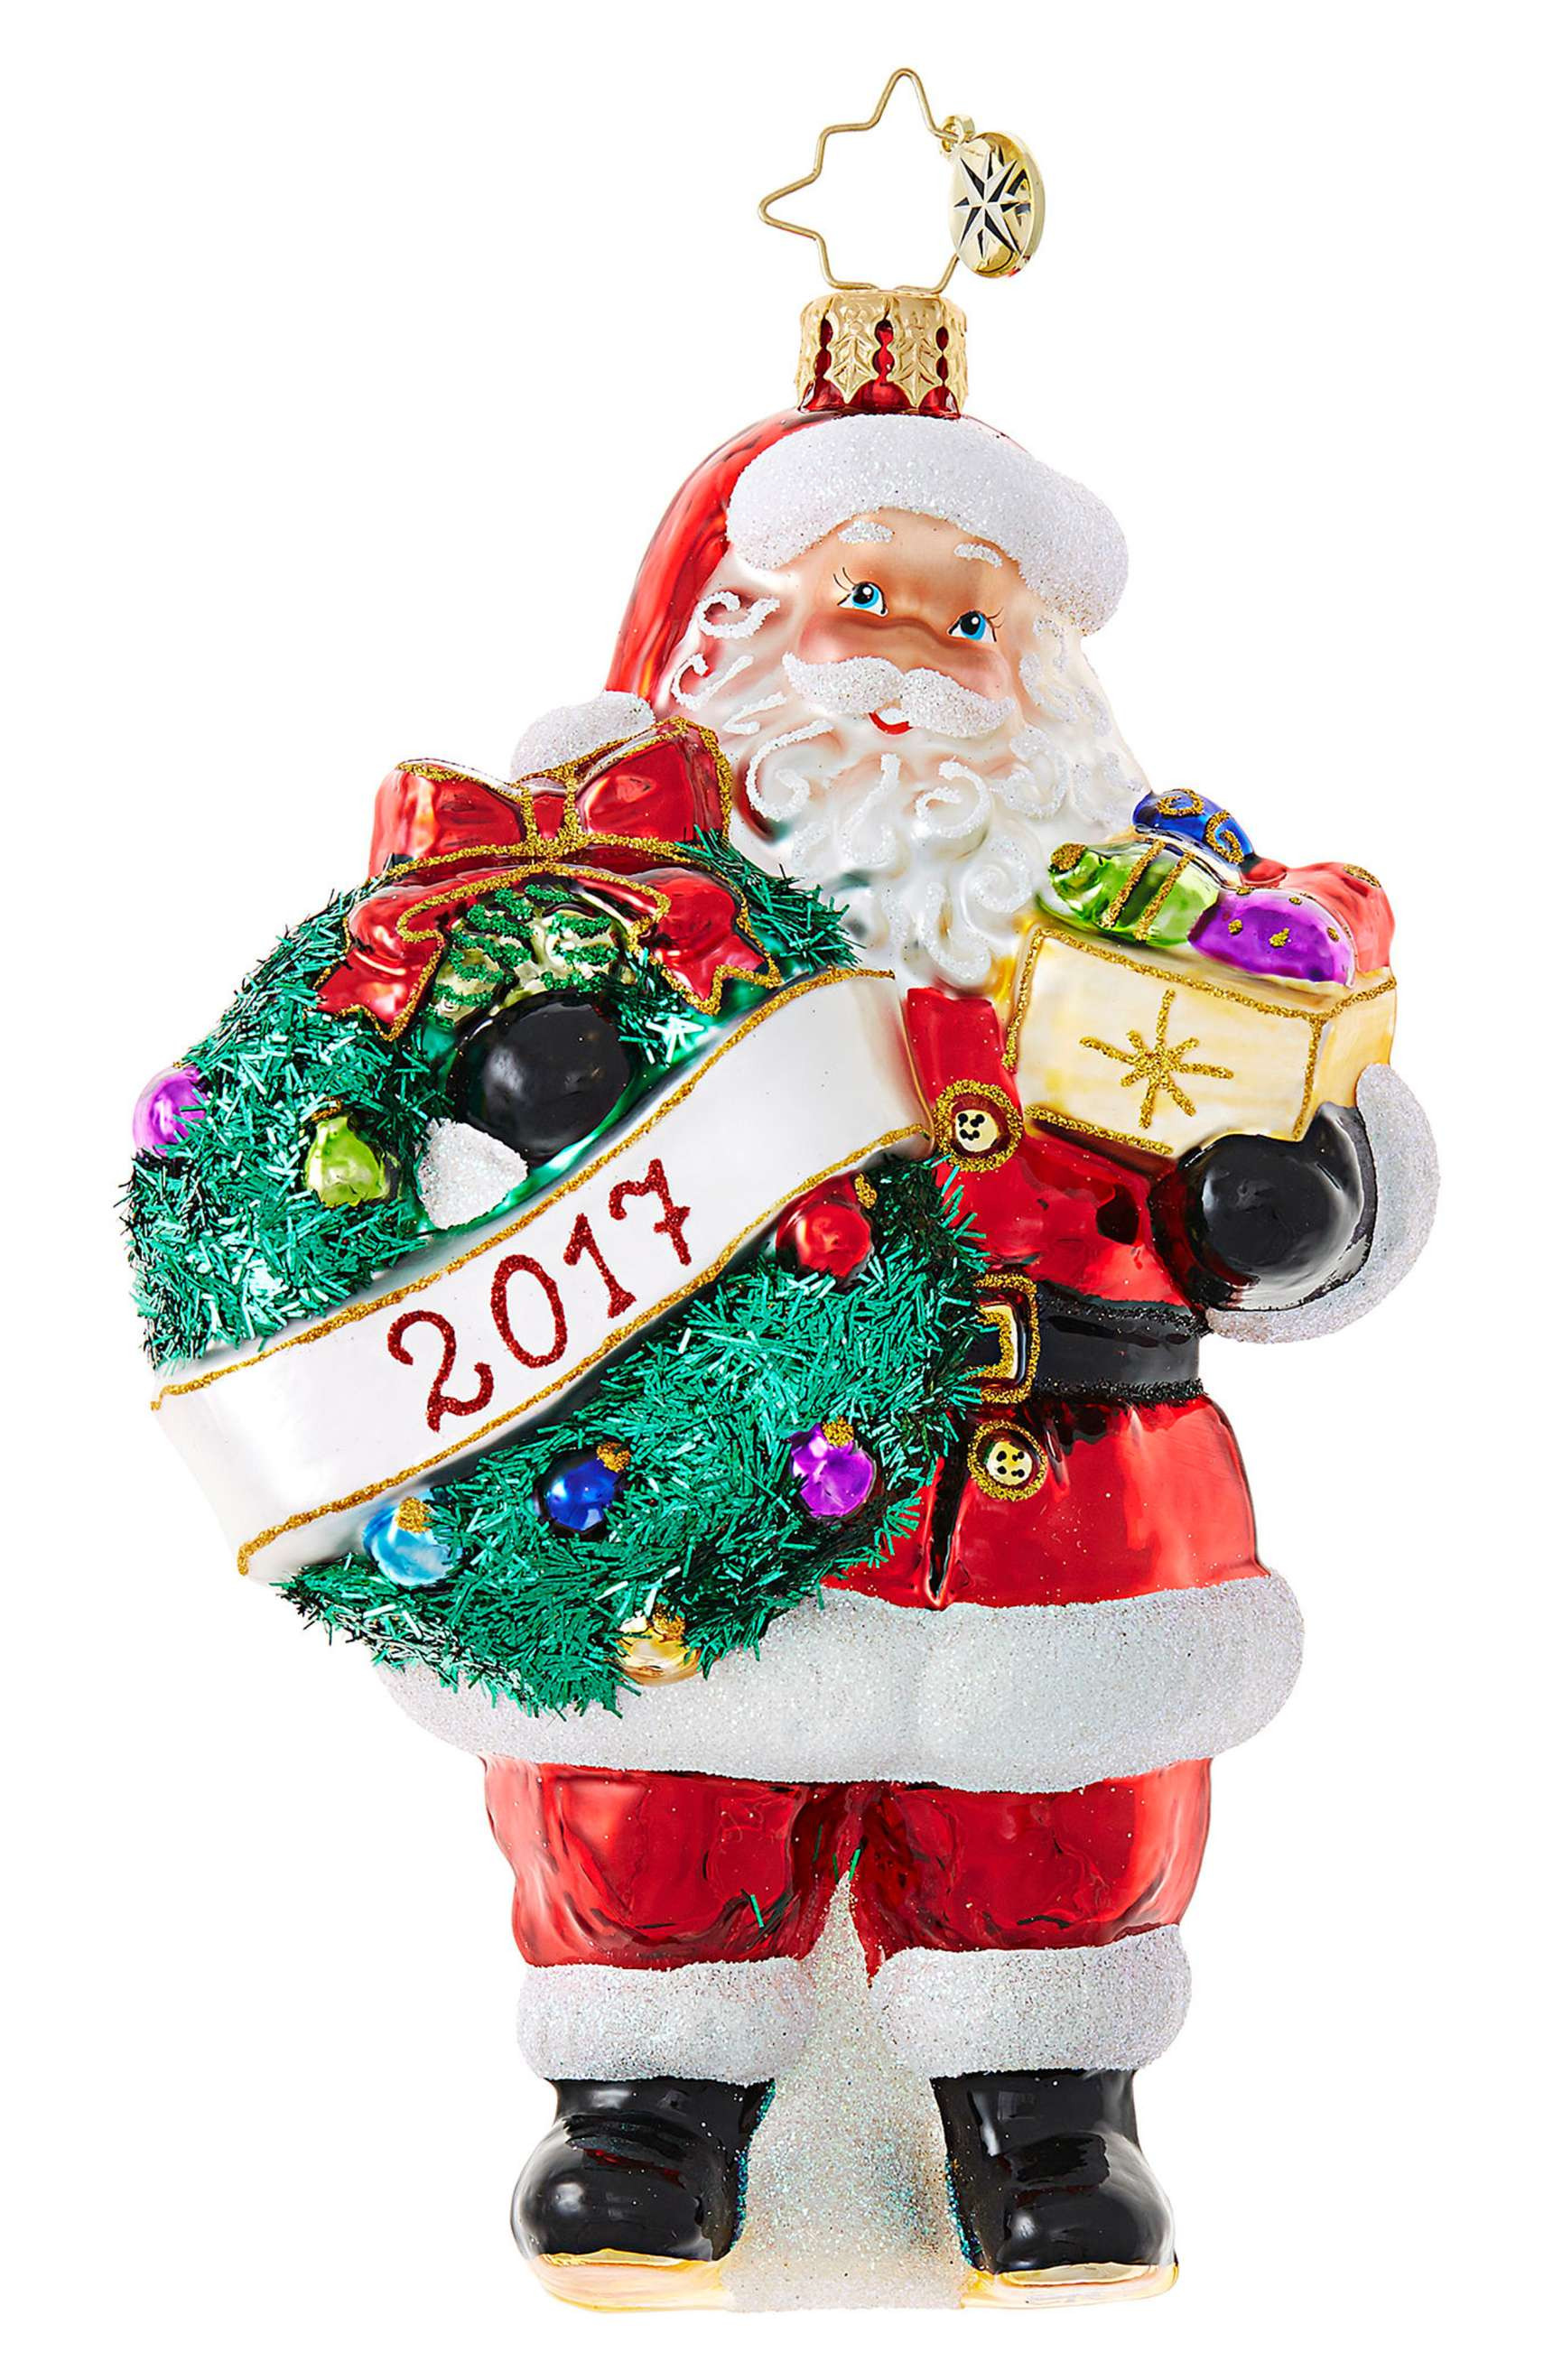 Santa Christmas ornaments Awesome 16 Best Glass Christmas ornaments Bulbs & ornament Sets Of Attractive 48 Pics Santa Christmas ornaments